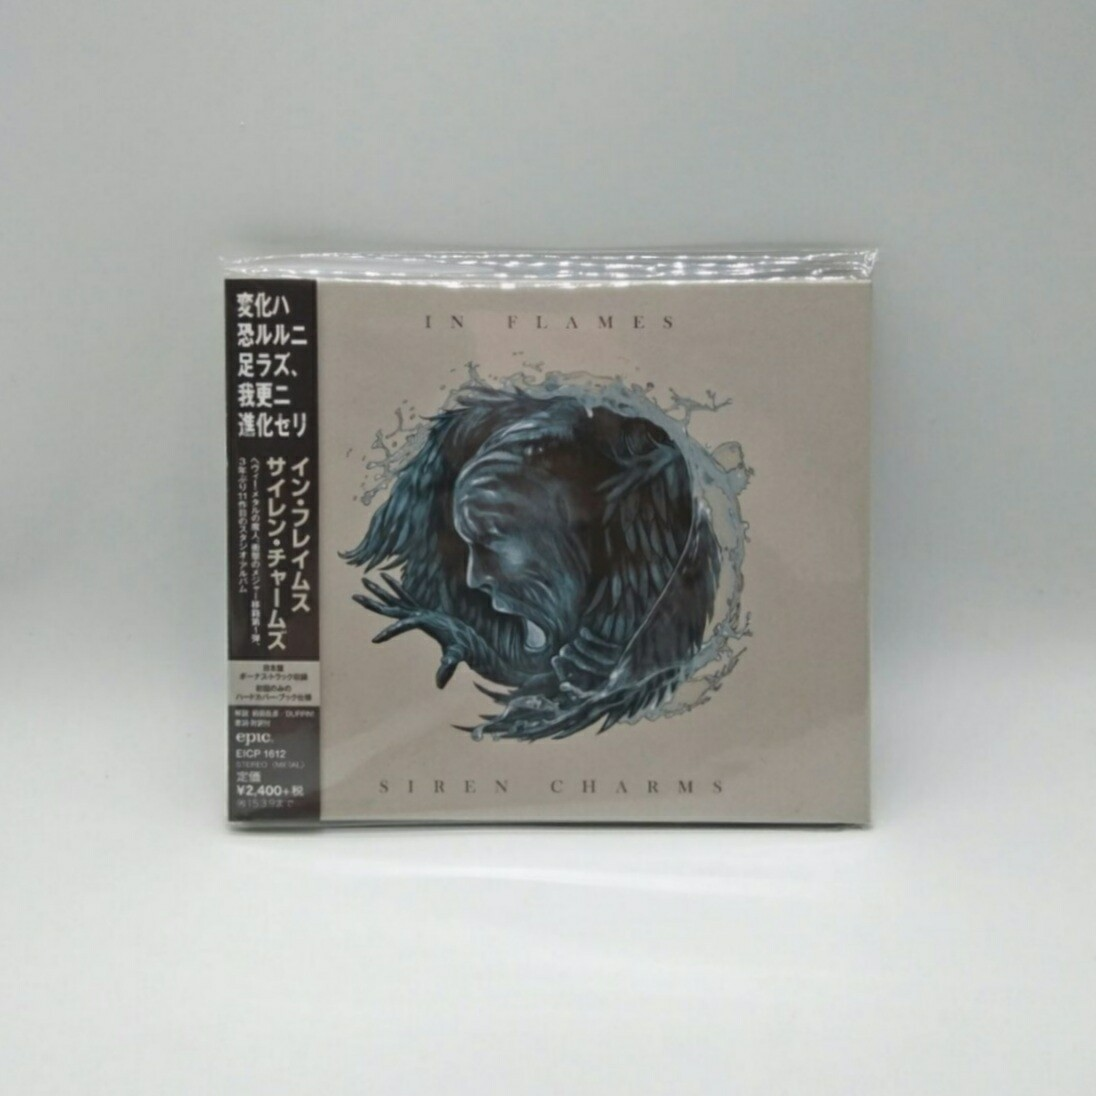 [USED] IN FLAMES -SIREN CHARMS- CD (JAPAN PRESS)